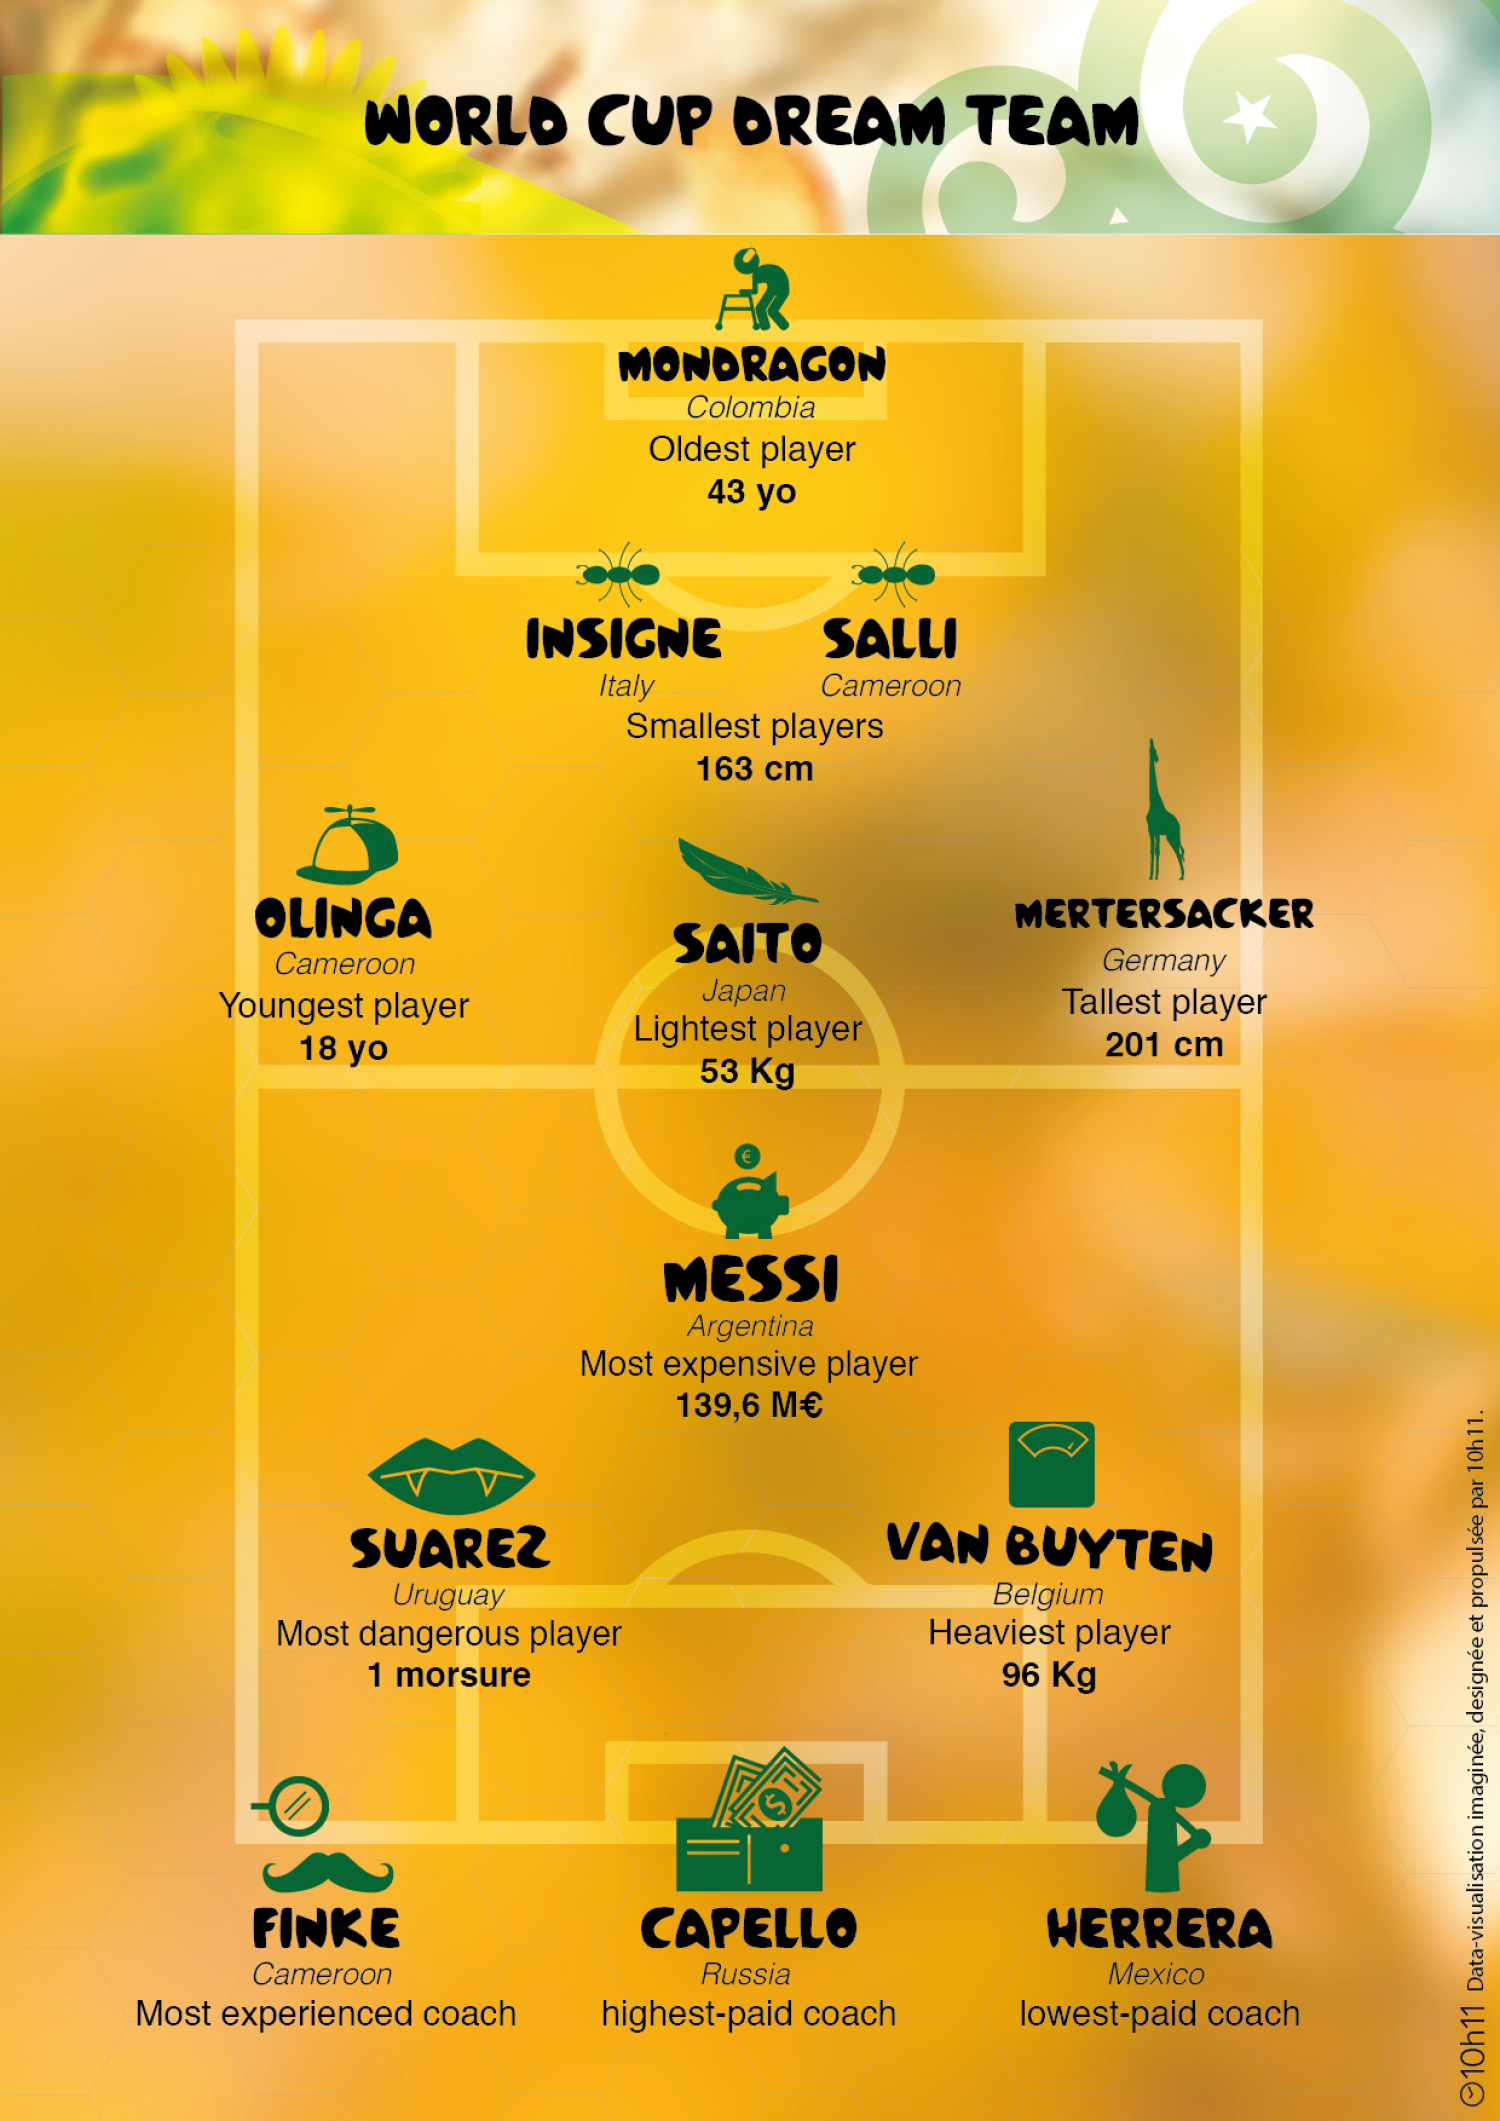 World Cup 2014 : the Dream Team Infographic